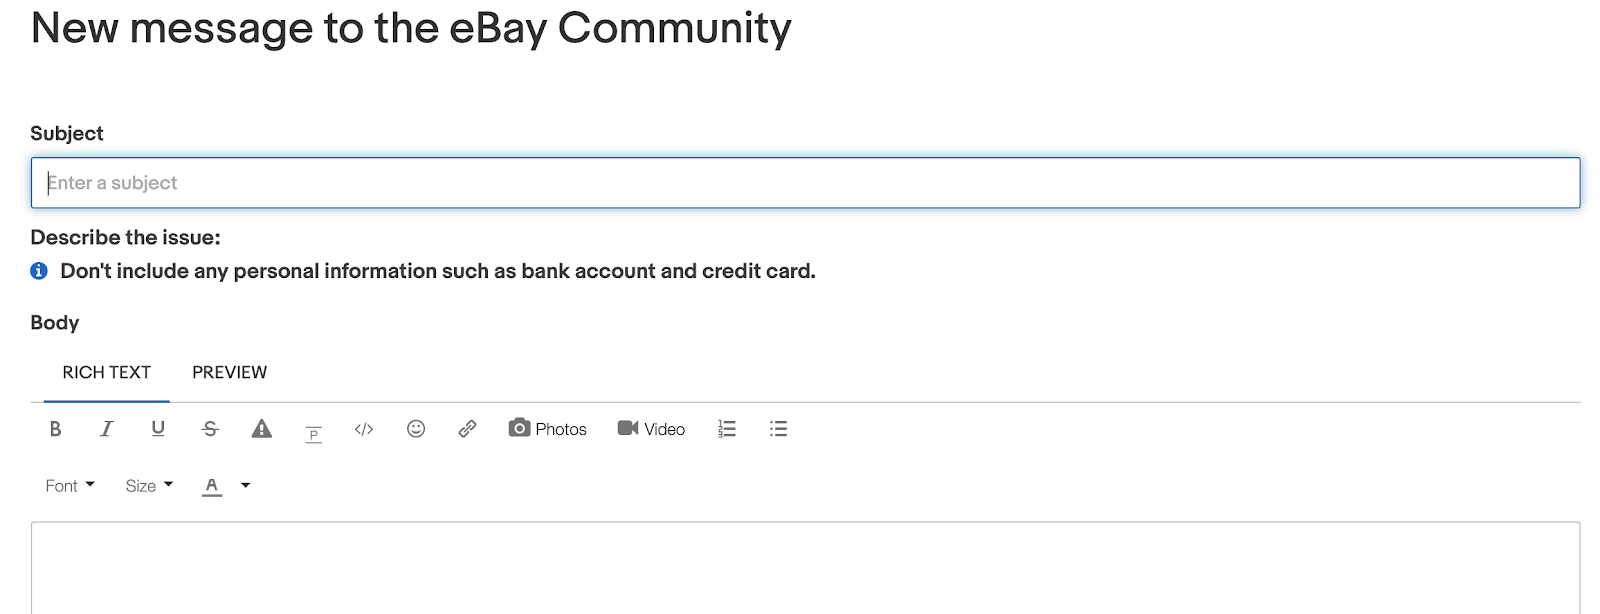 eBay community message page